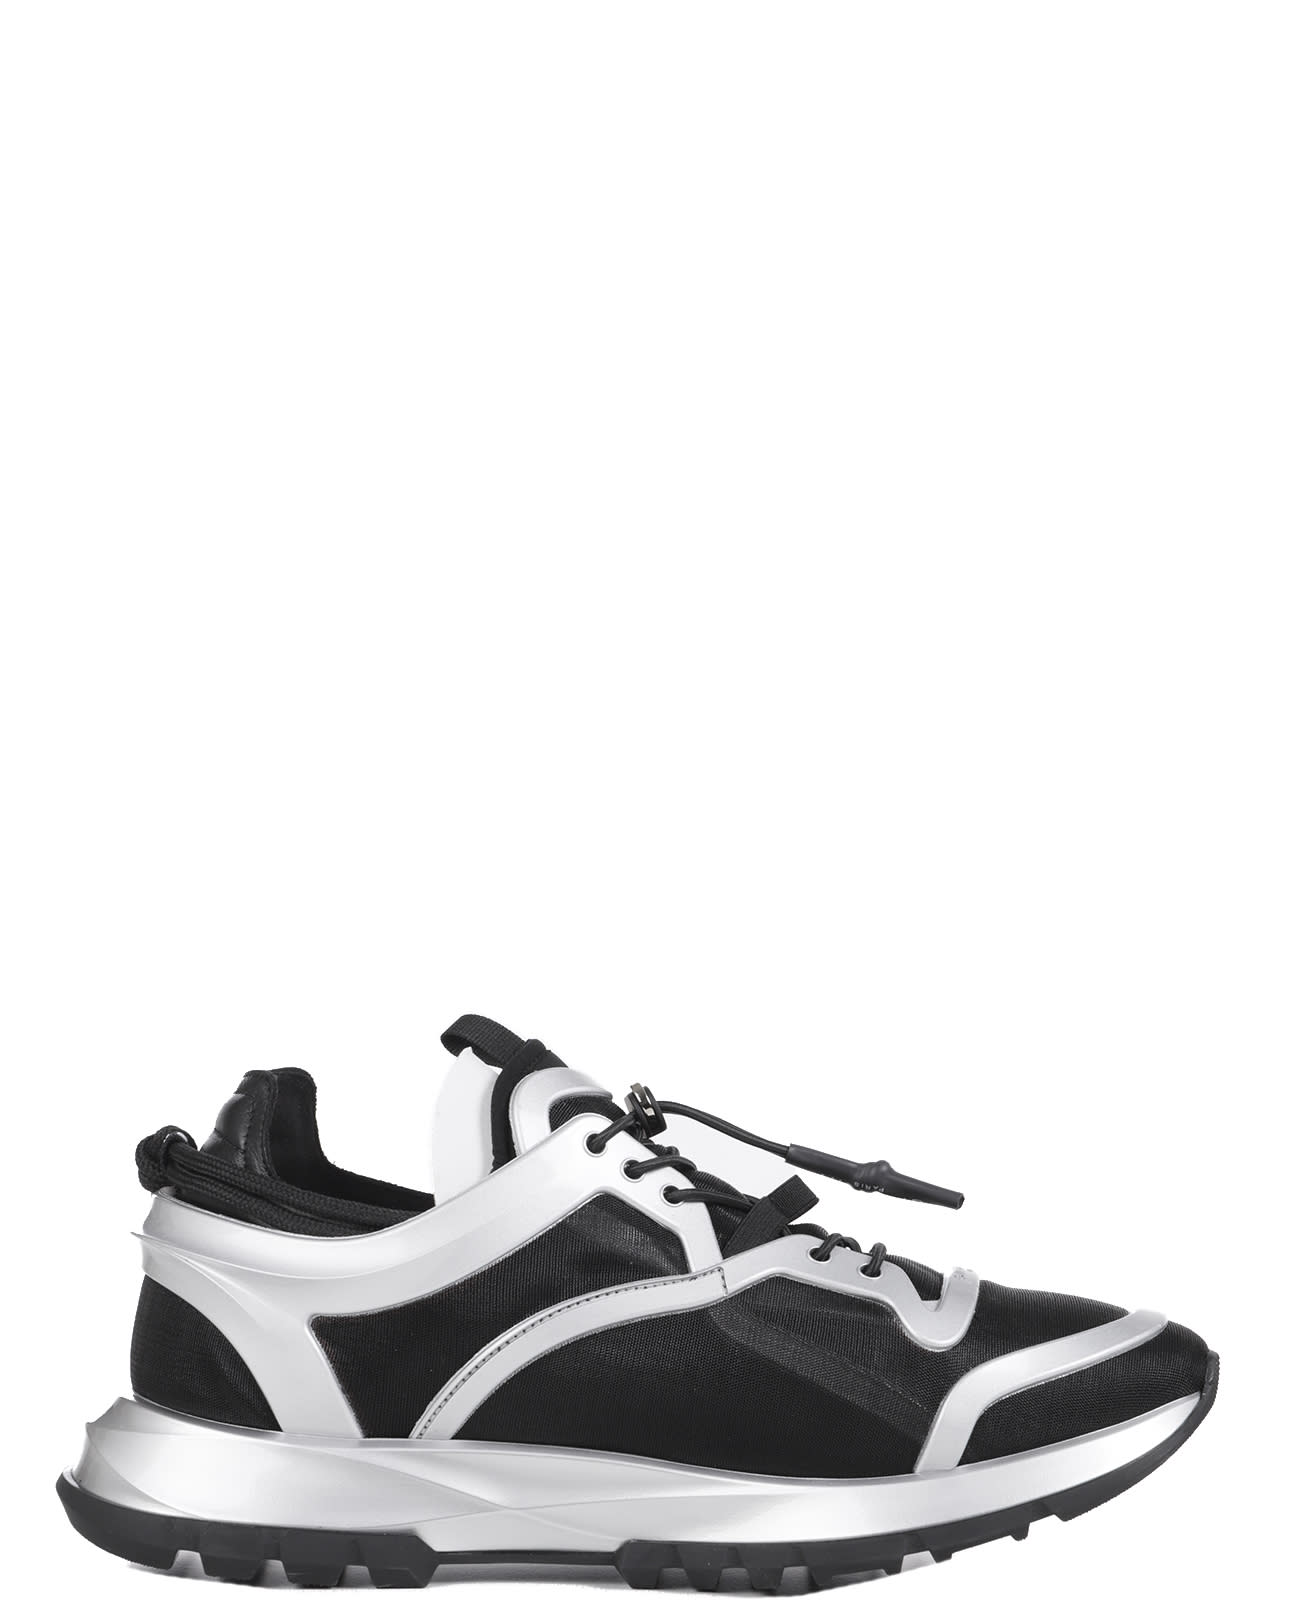 Givenchy Activewears BLACK SPECTRE RUNNER CAGE SNEAKERS